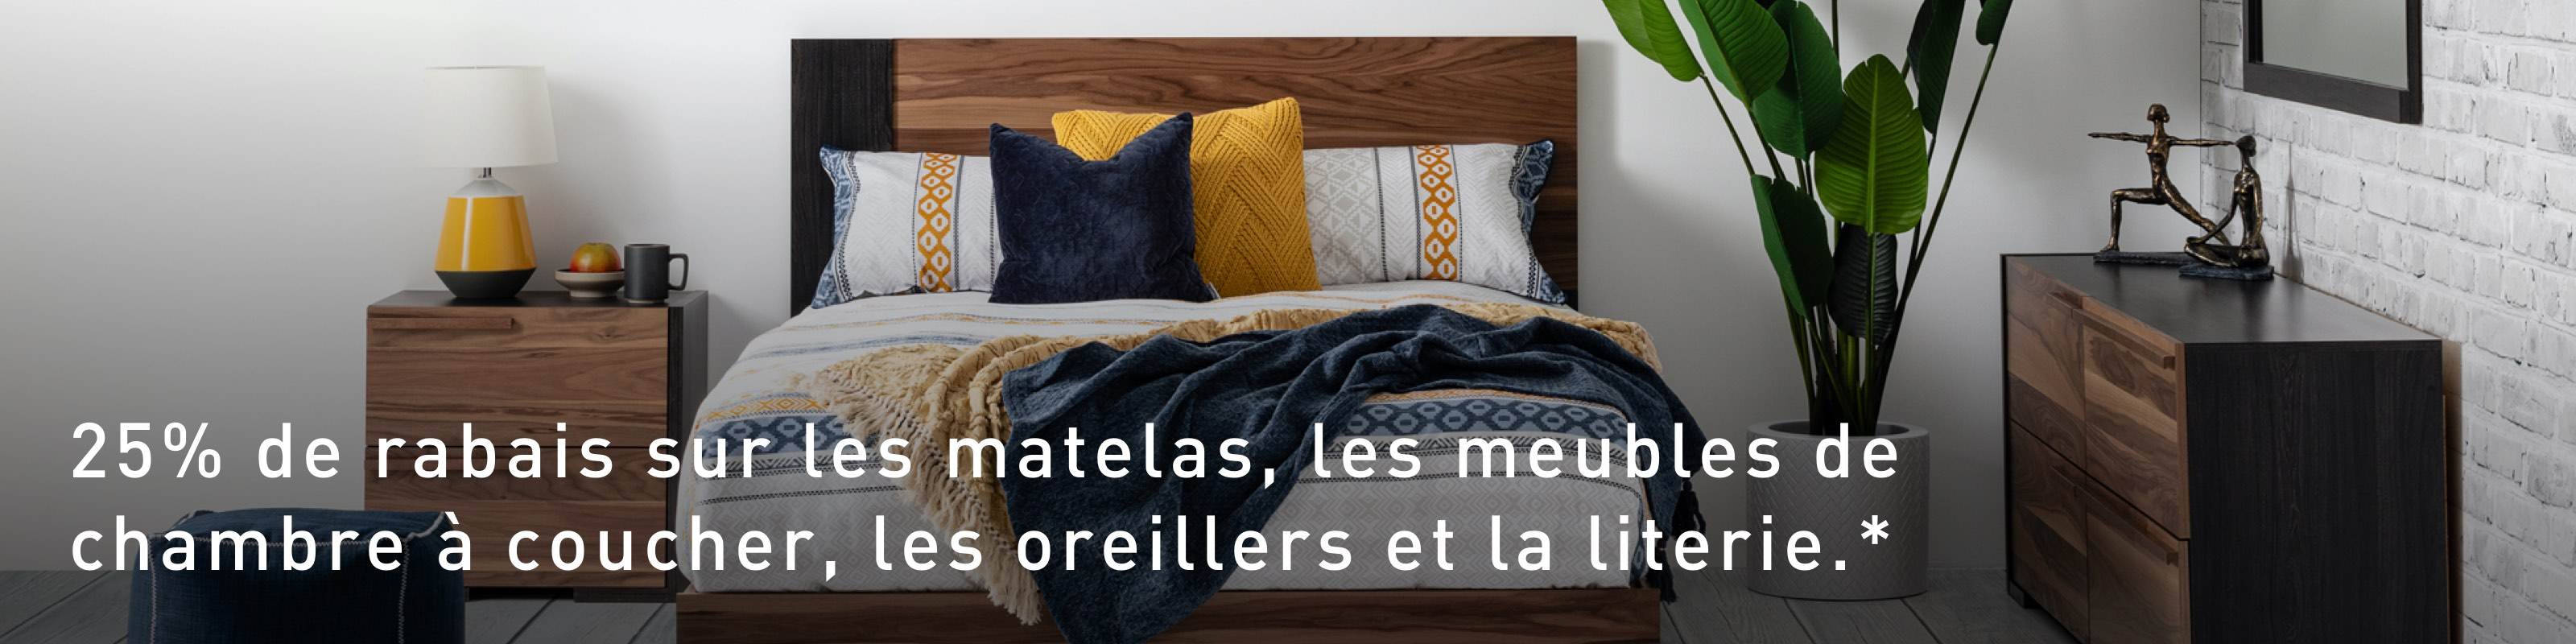 https://cdn.tanguay.ca/userfiles/images/campagne/2021/tanguay/back2school/bannieres_accueil/web_carrousel_1600x400_chambre2.jpg